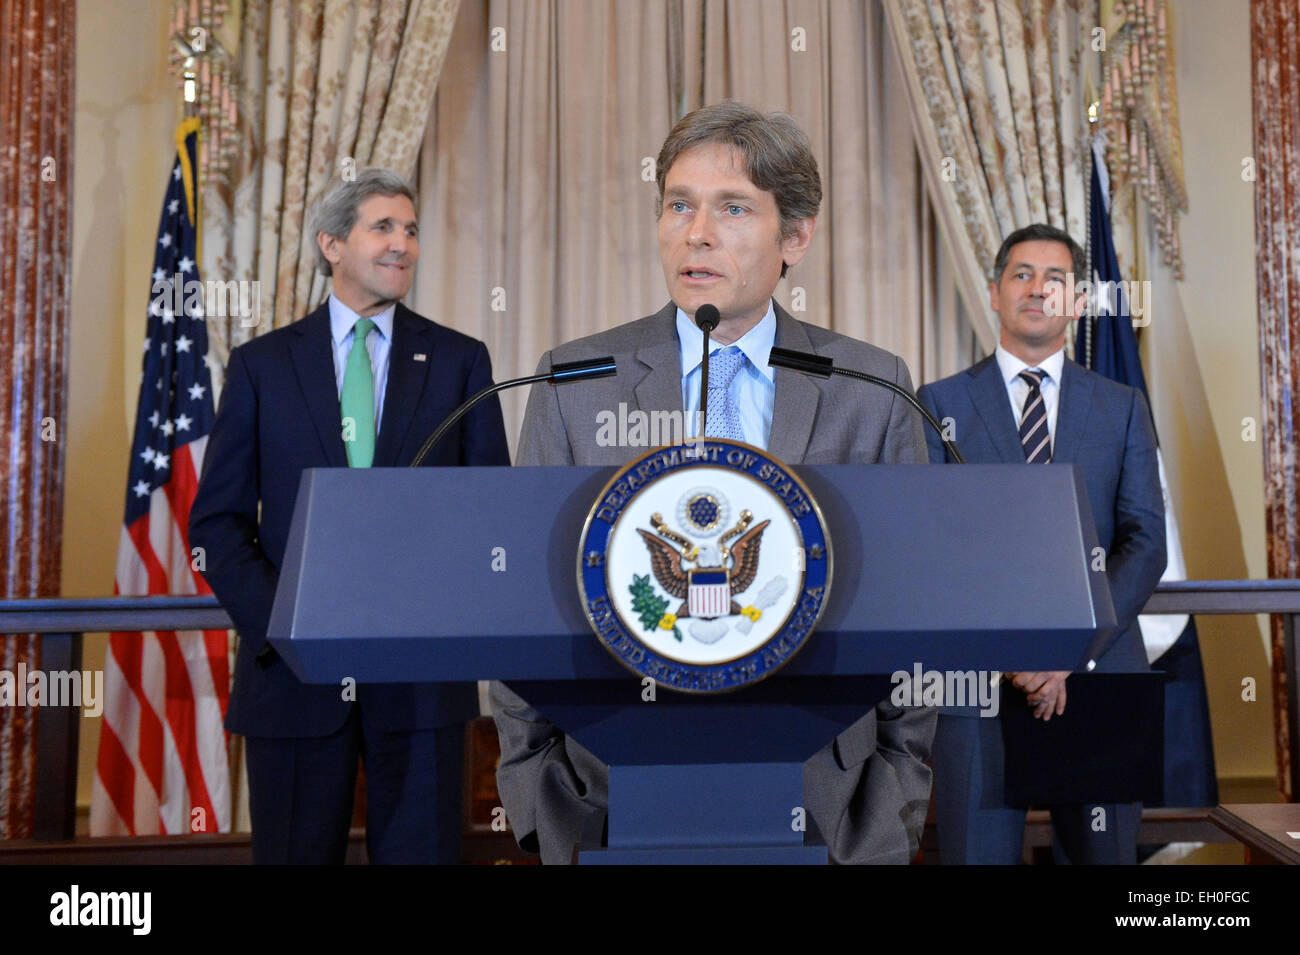 Assistant Secretary of State for Democracy, Human Rights and Labor Tom Malinowski delivers remarks at the welcome Stock Photo